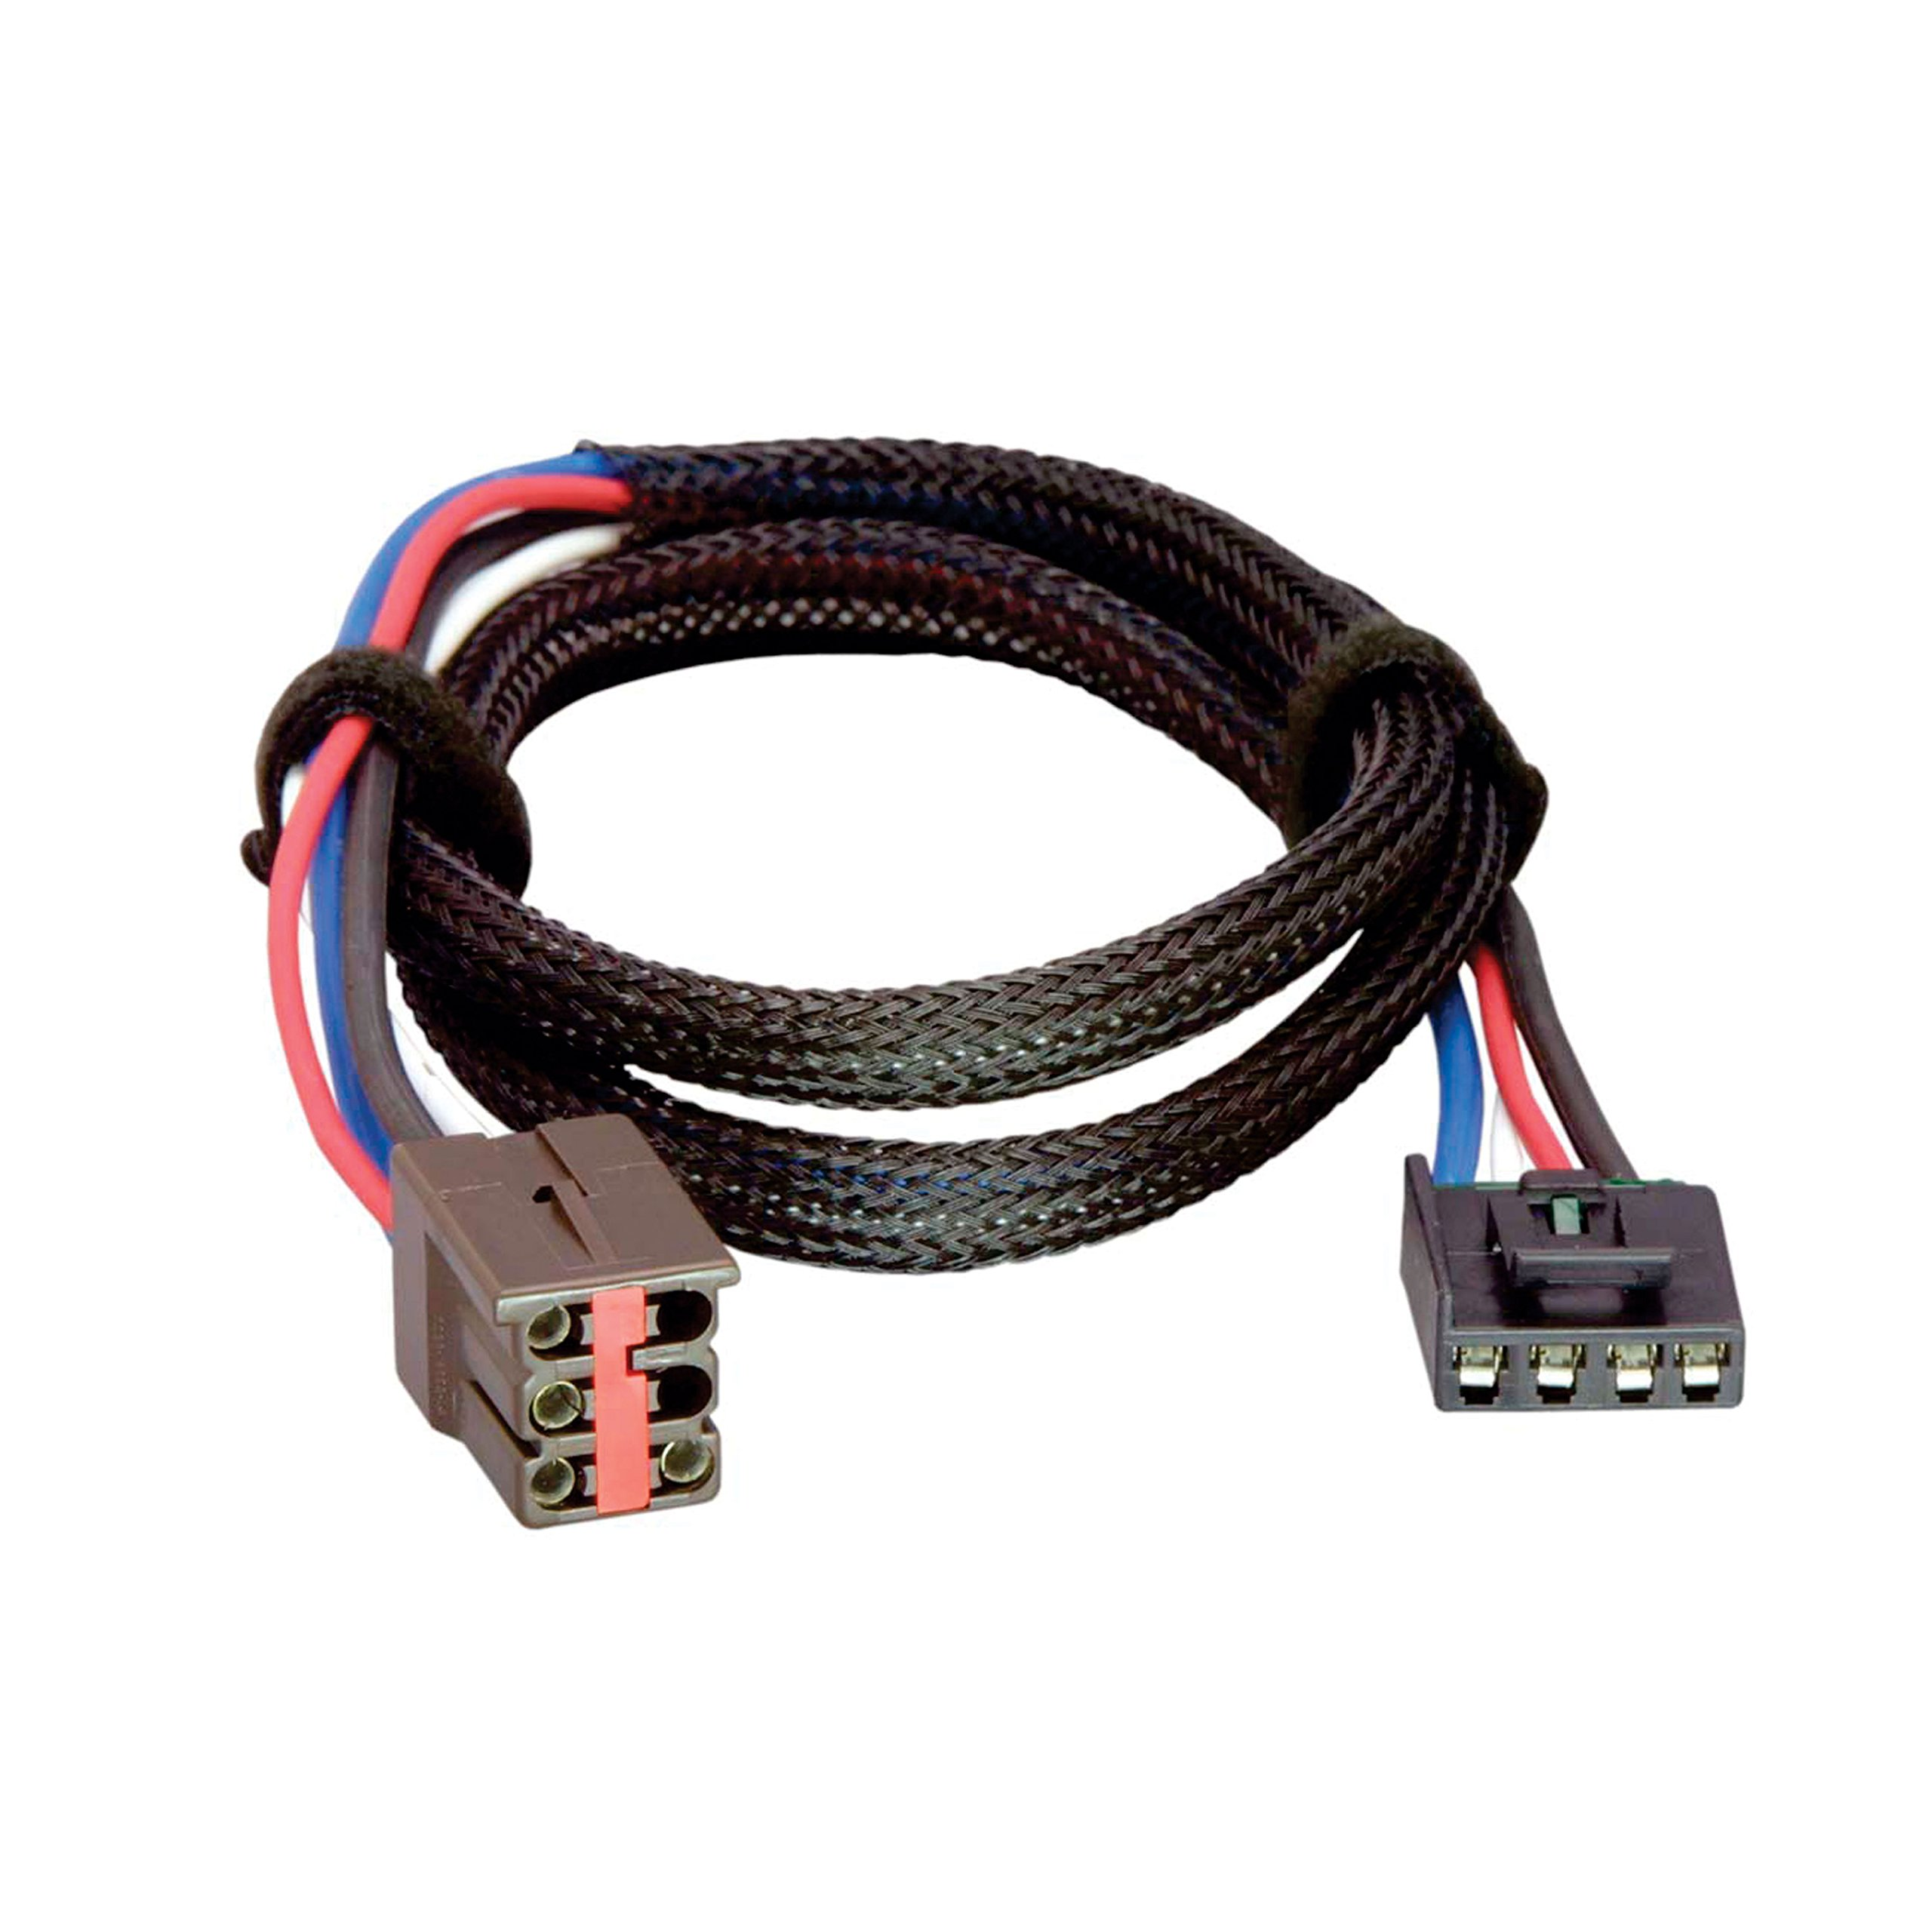 Amazon.com: Tekonsha 3035-P ke Control Wiring Adapter for ... on